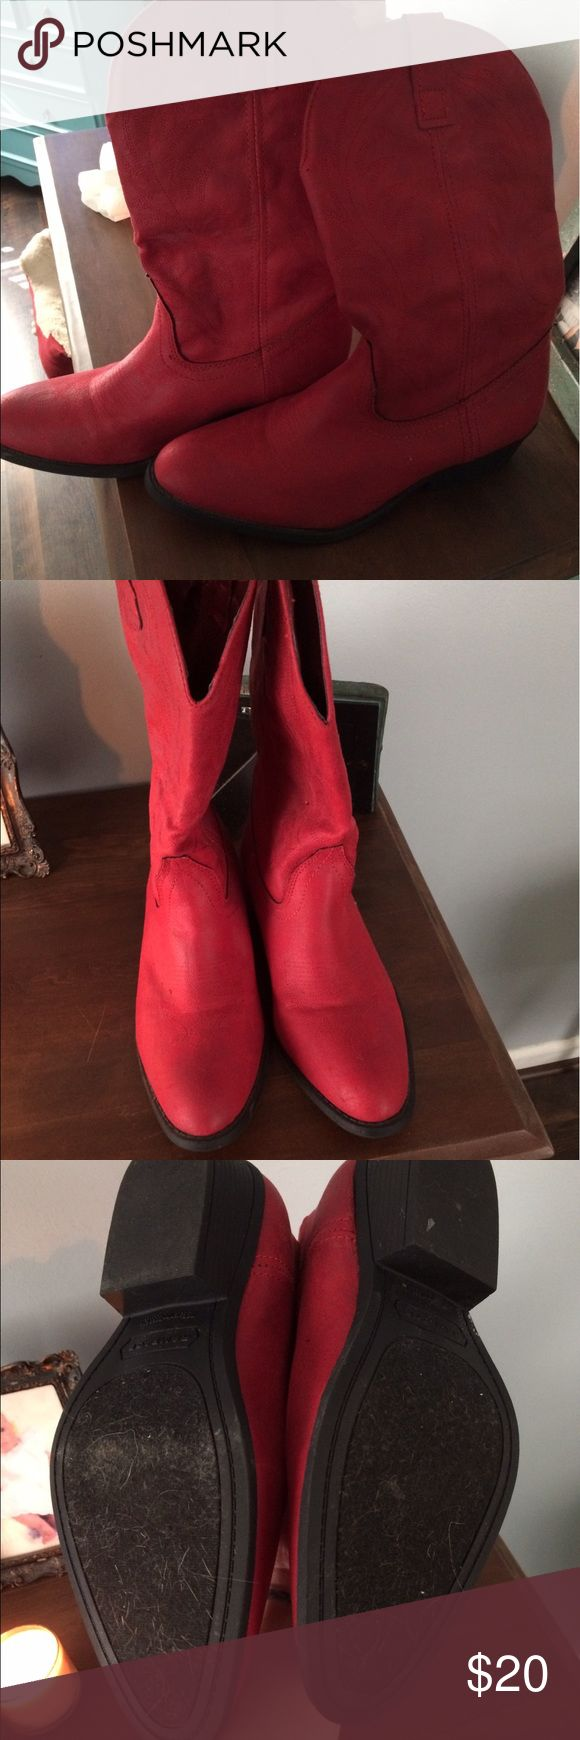 Red cowboy boots 10 Red cowboy boots. Size 10. Wore once. Runs small rampage is the brand Shoes Heeled Boots